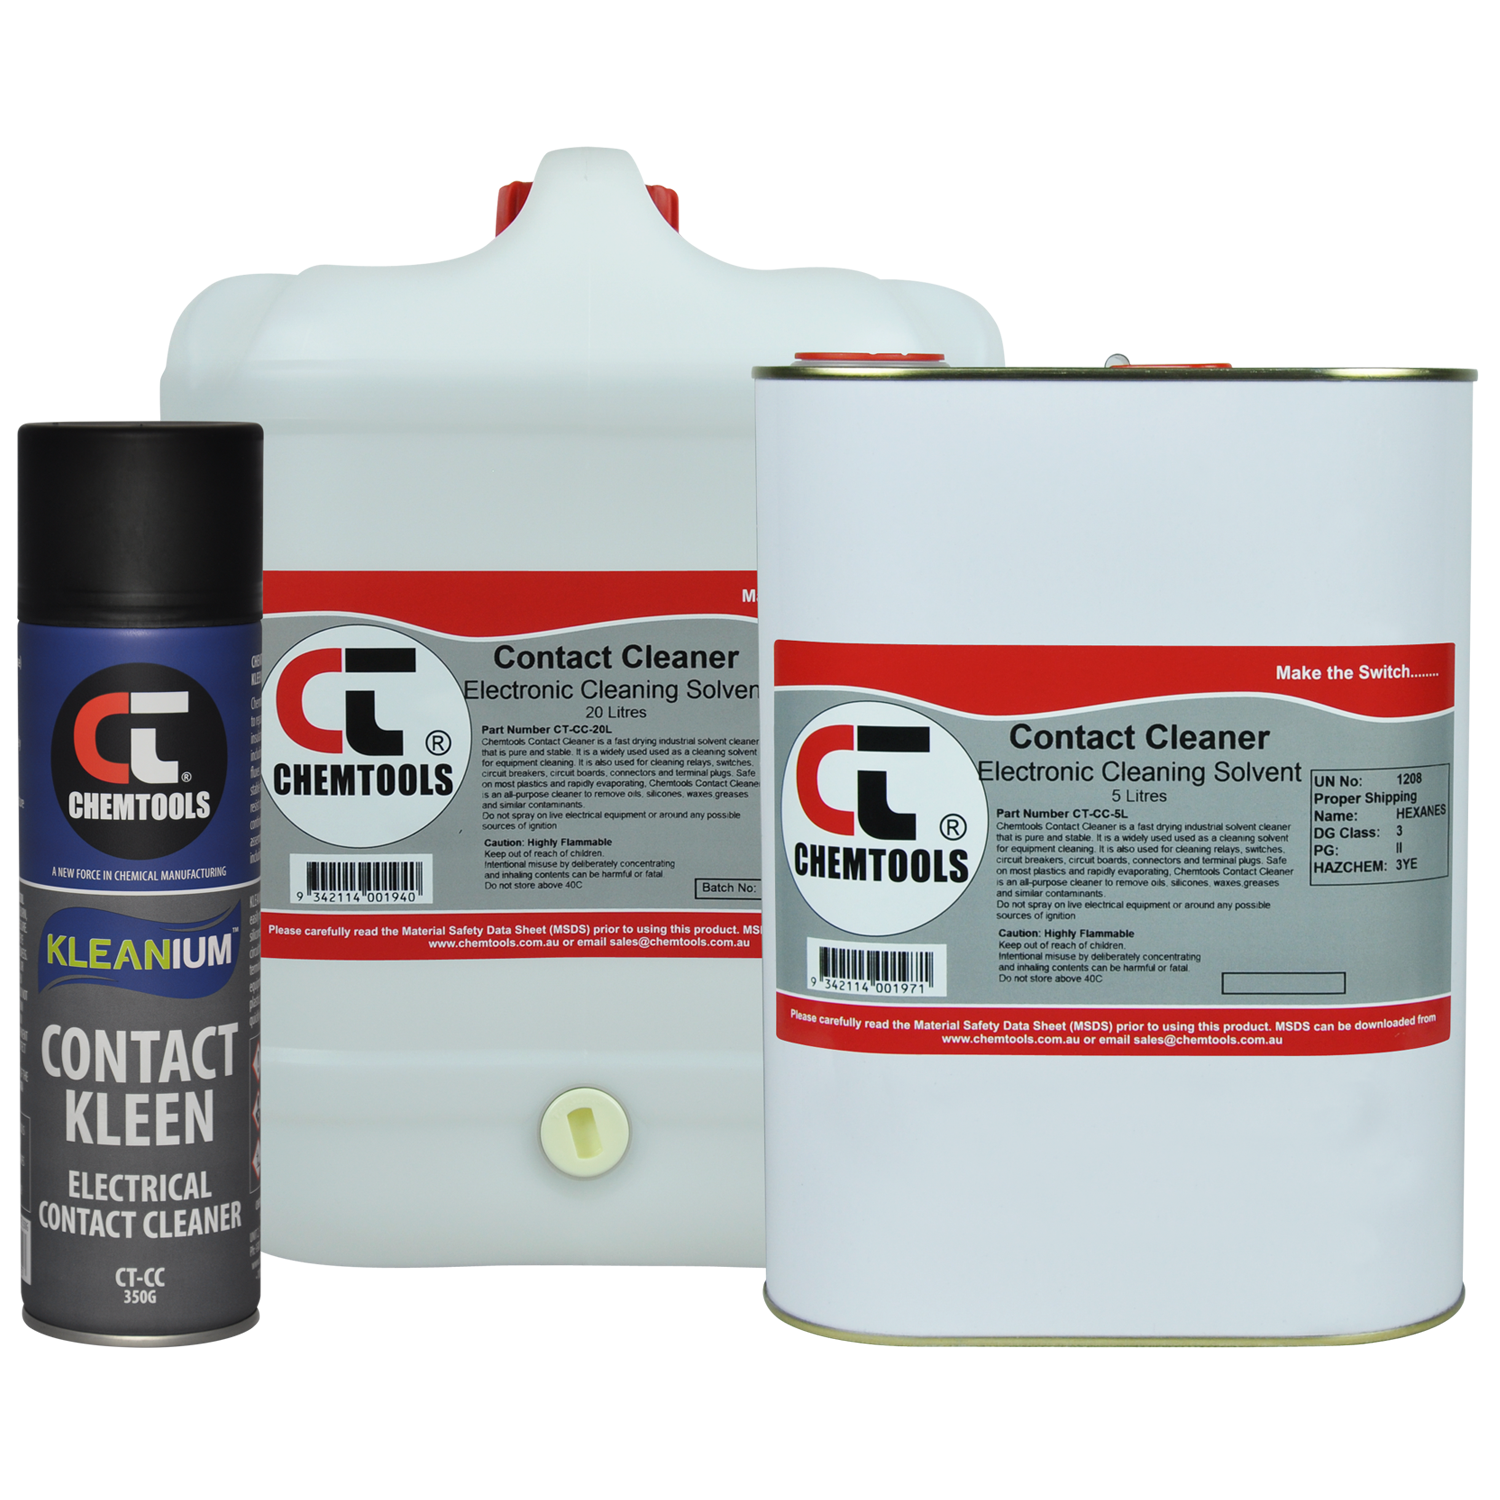 Kleanium Contact Kleen – Electrical Contact Cleaner - 500ml - 12 pack